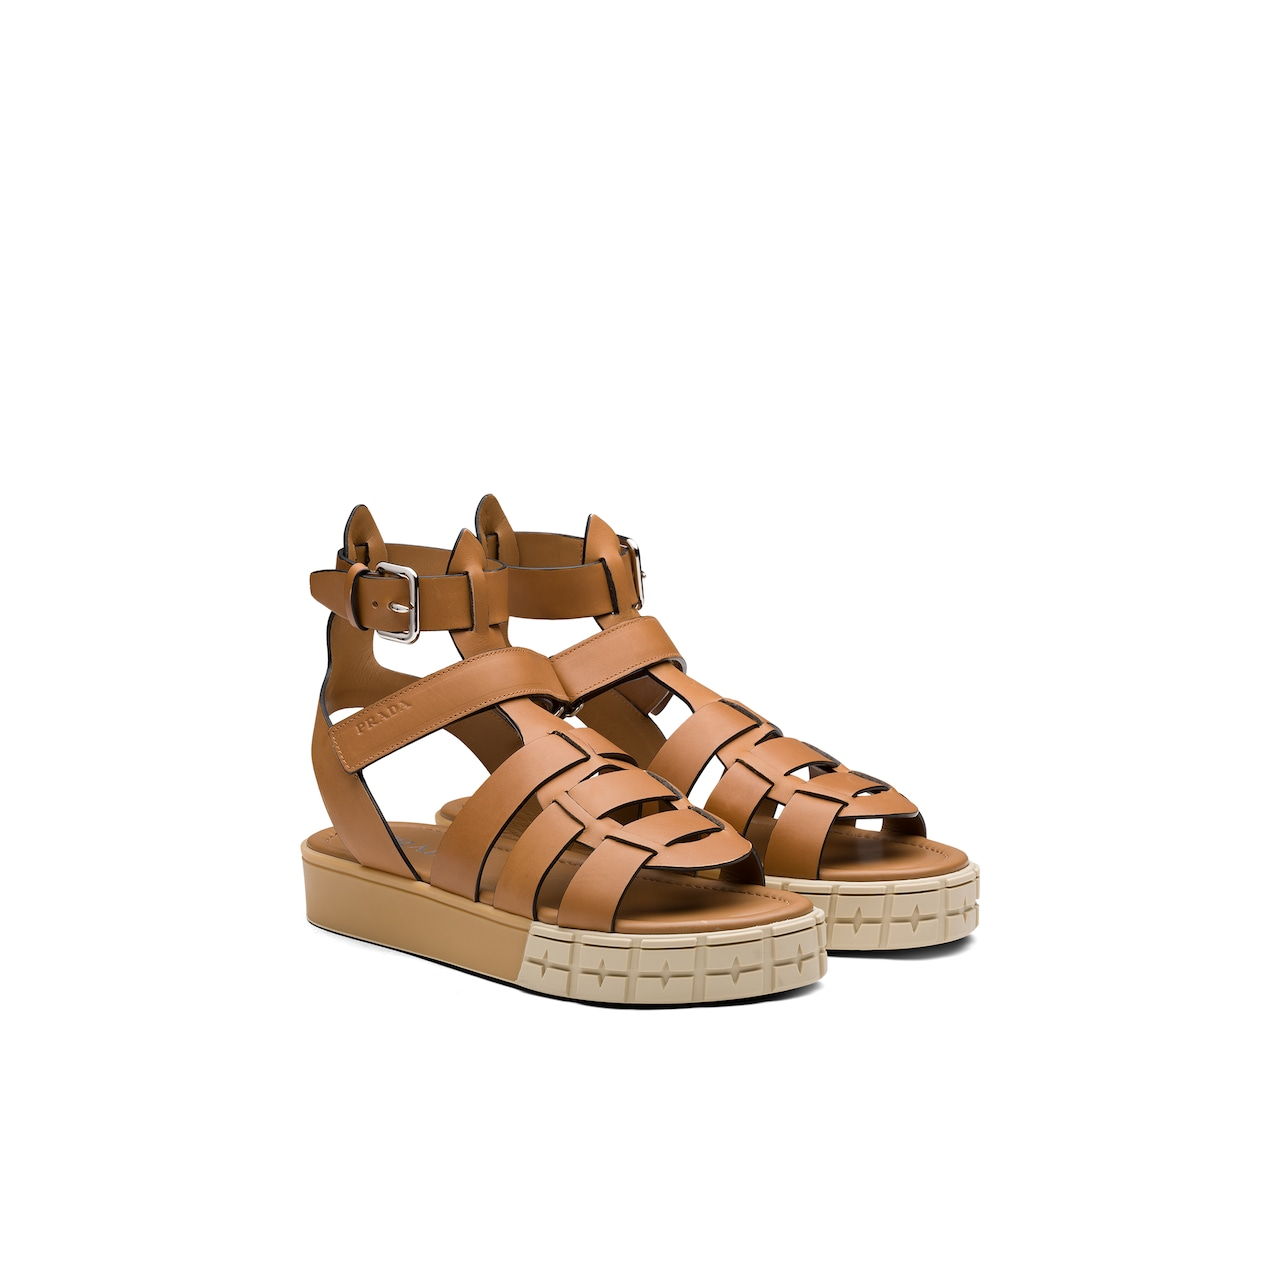 Prada Leather sandals 1